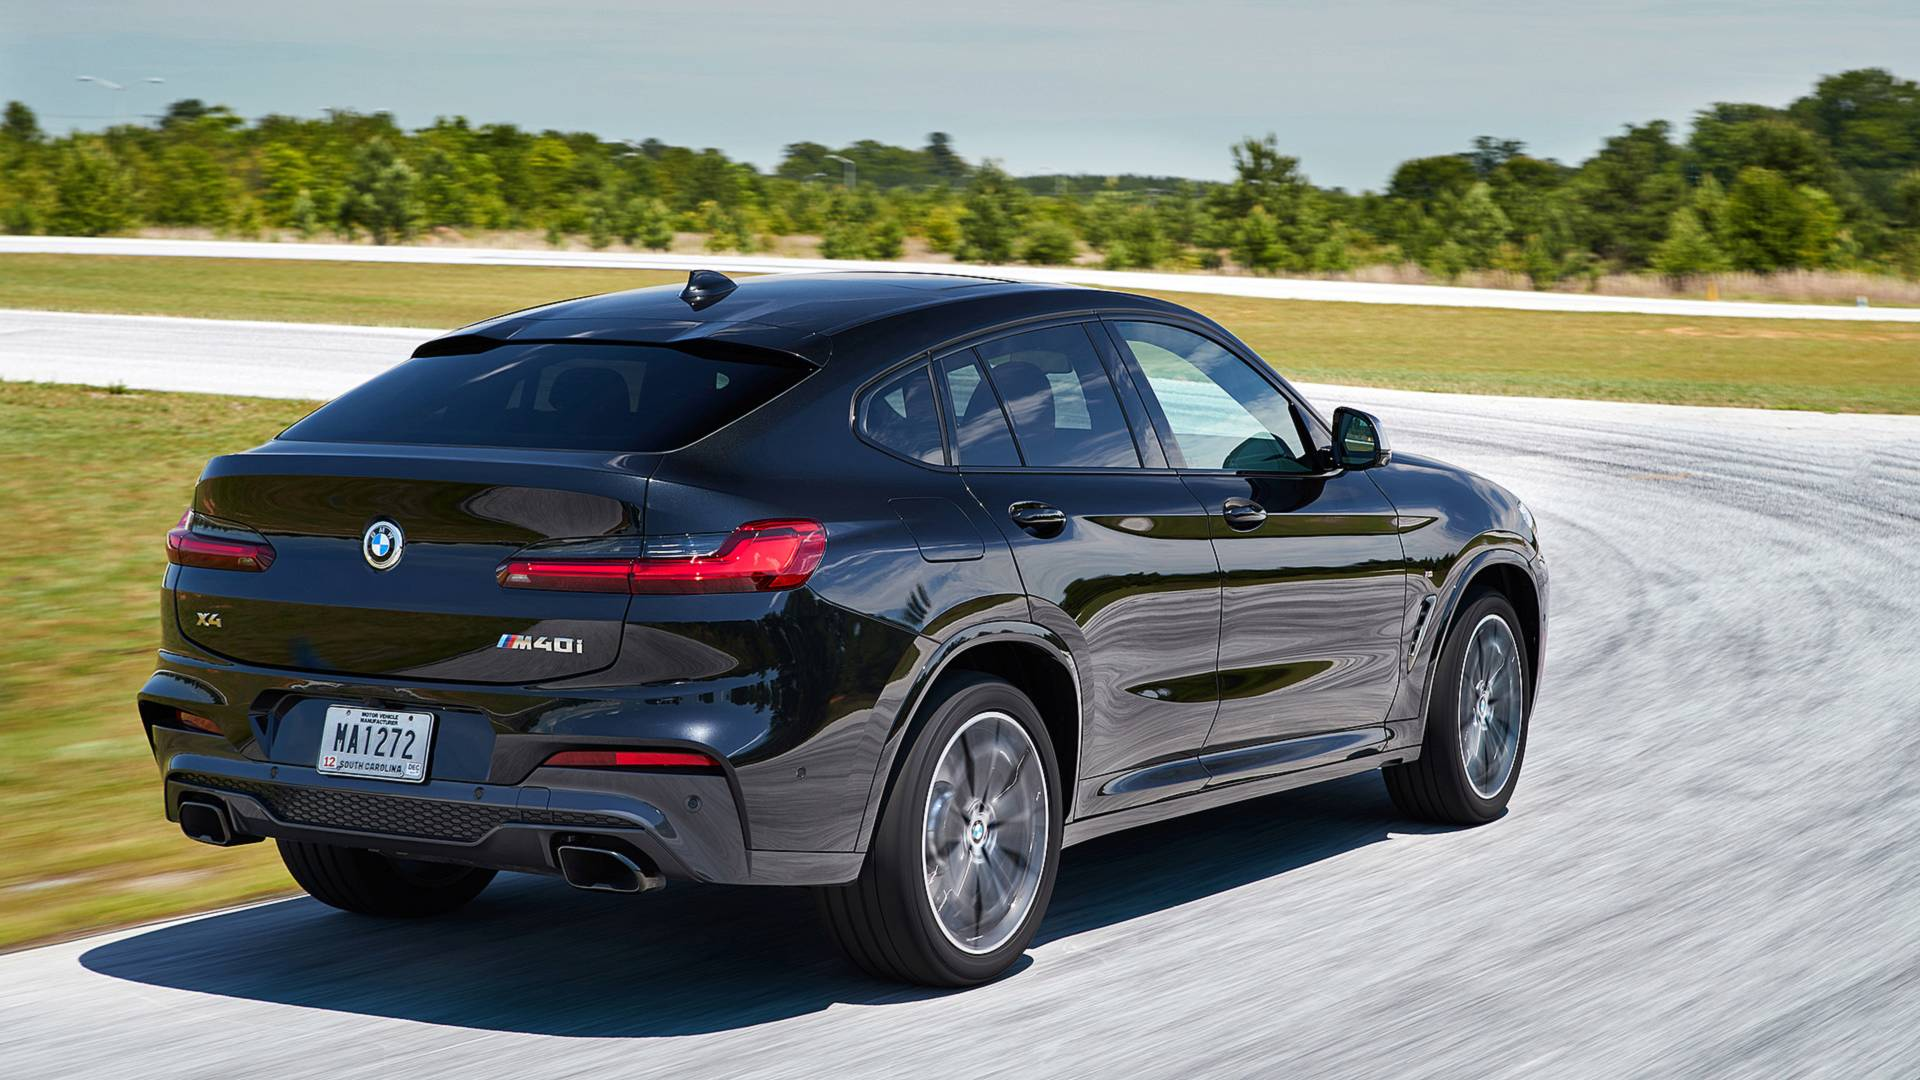 85 The 2019 Bmw X4 Release Date And Concept